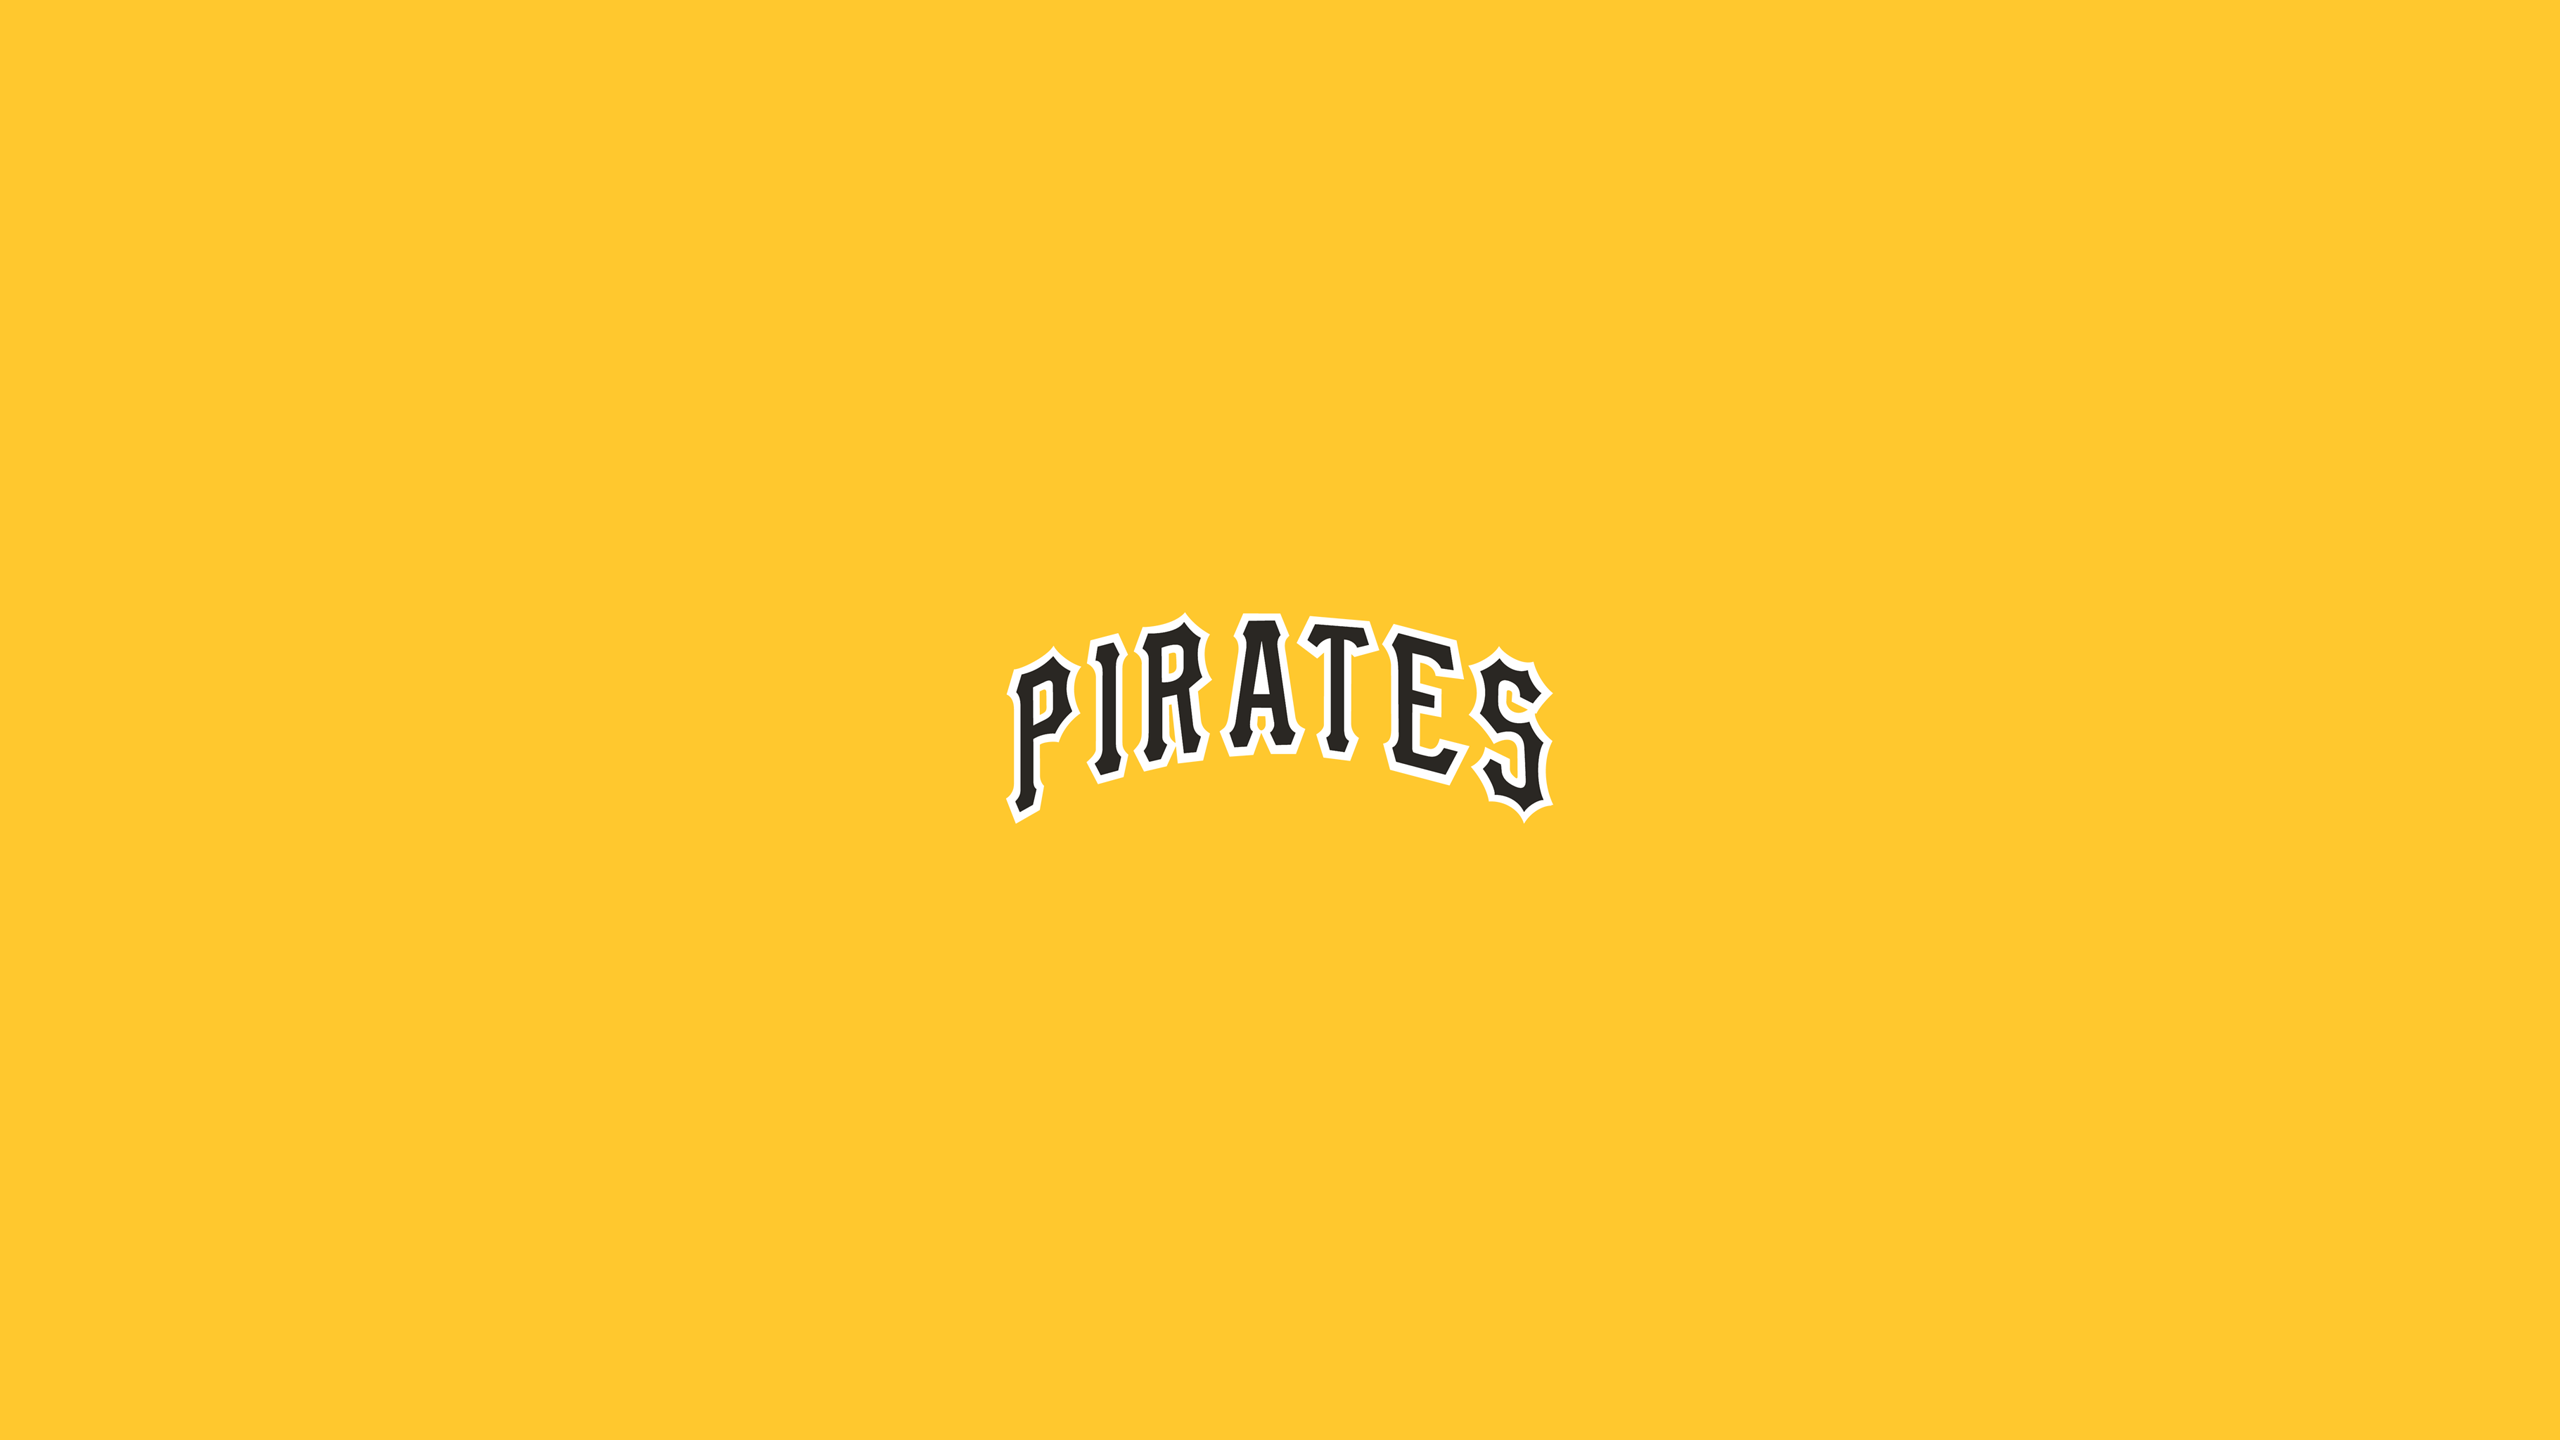 Pittsburgh Pirates (Old School - 1970s)